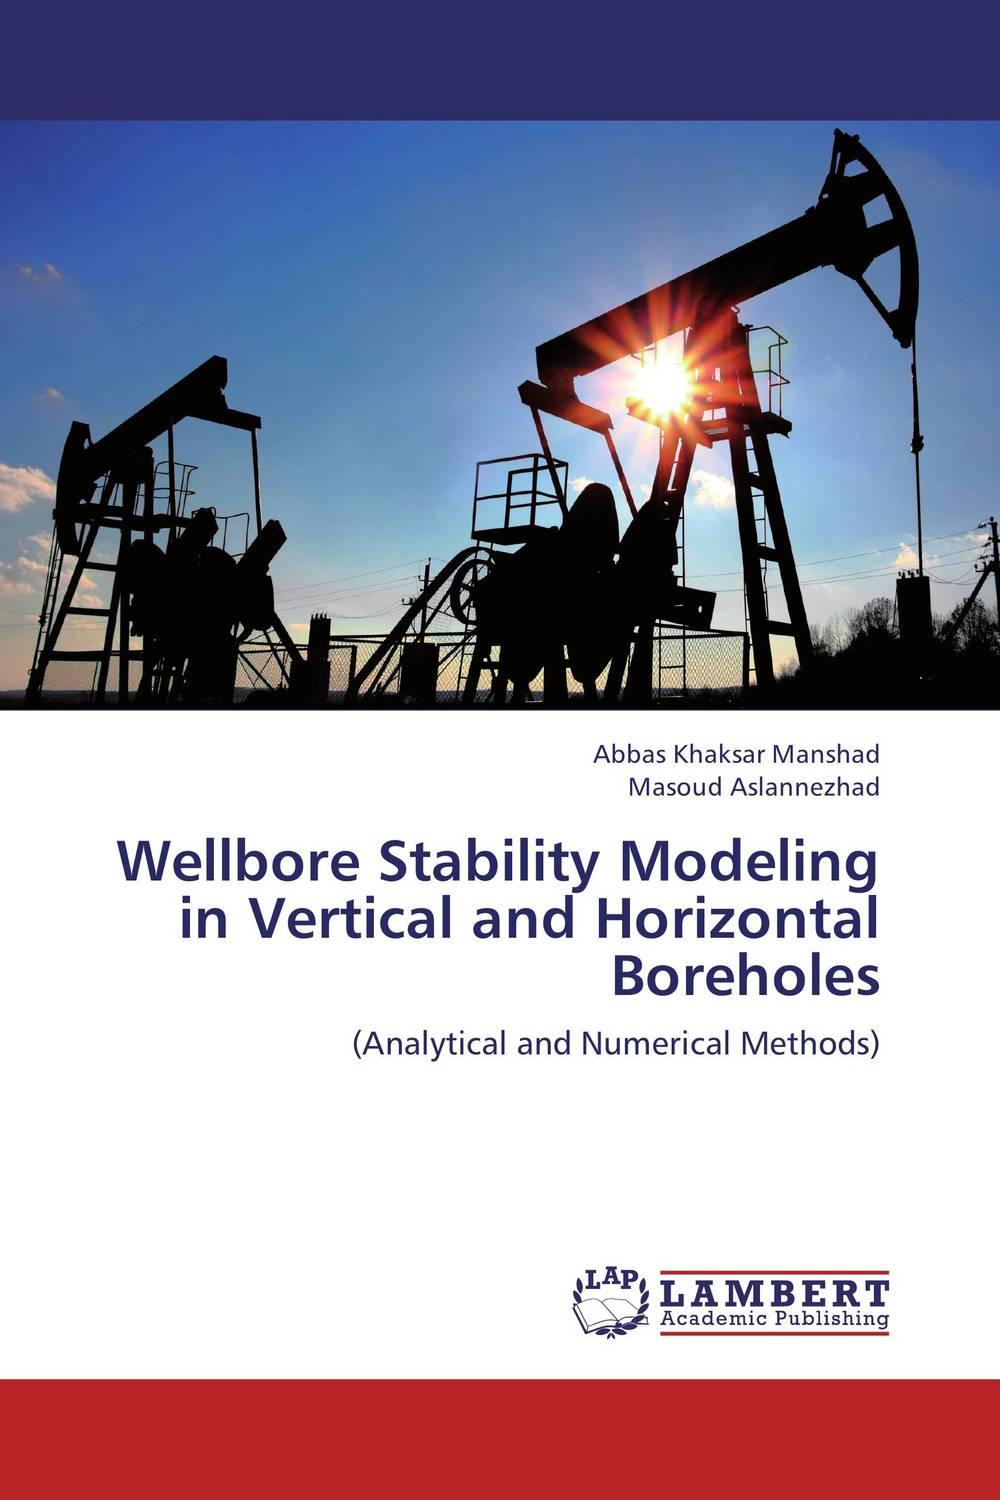 Wellbore Stability Modeling in Vertical and Horizontal Boreholes wellbore stability modeling in vertical and horizontal boreholes